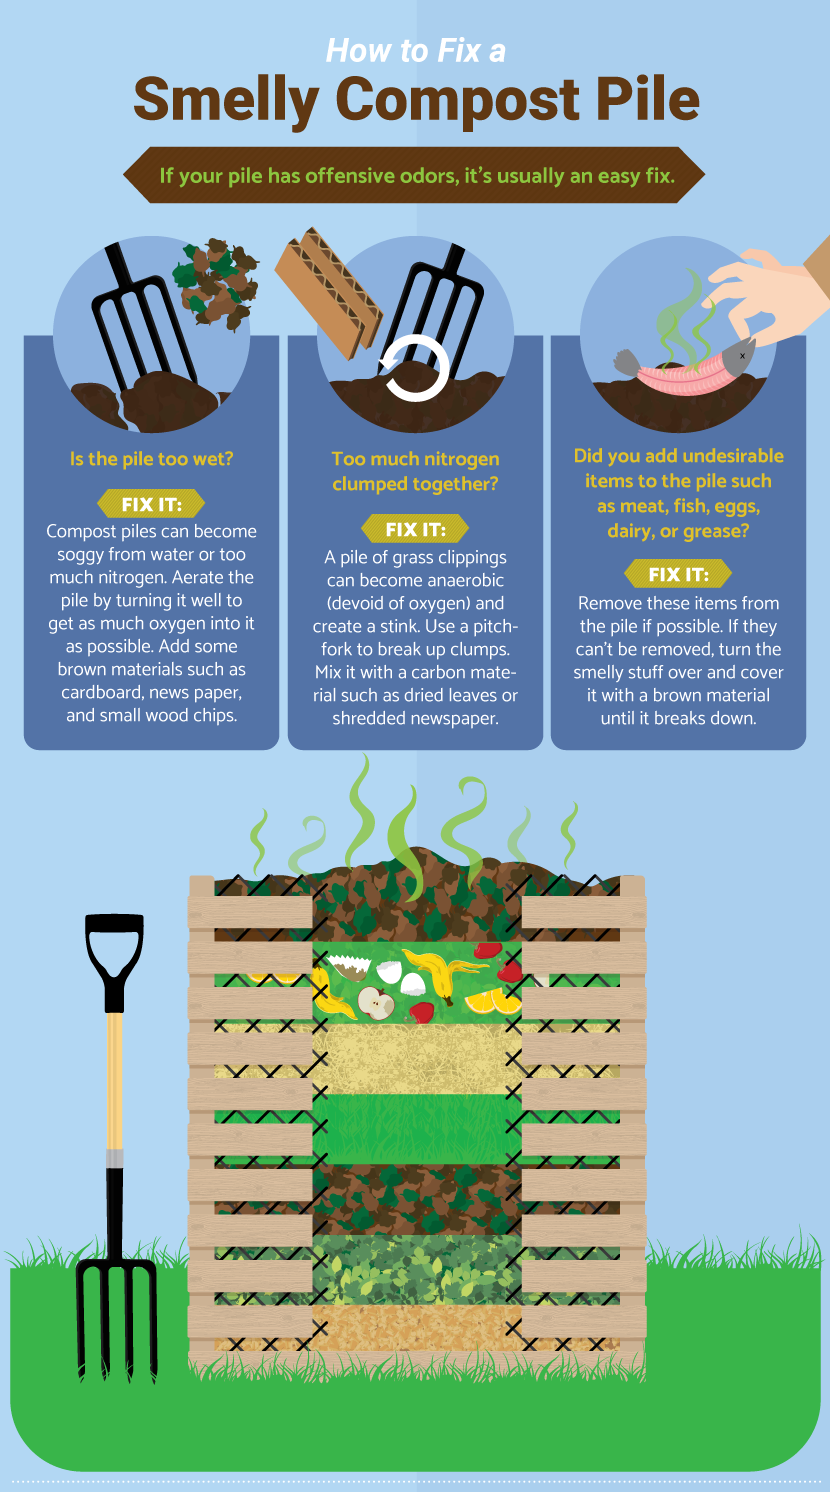 Composting: How to Fix a Smelly Compost Pile